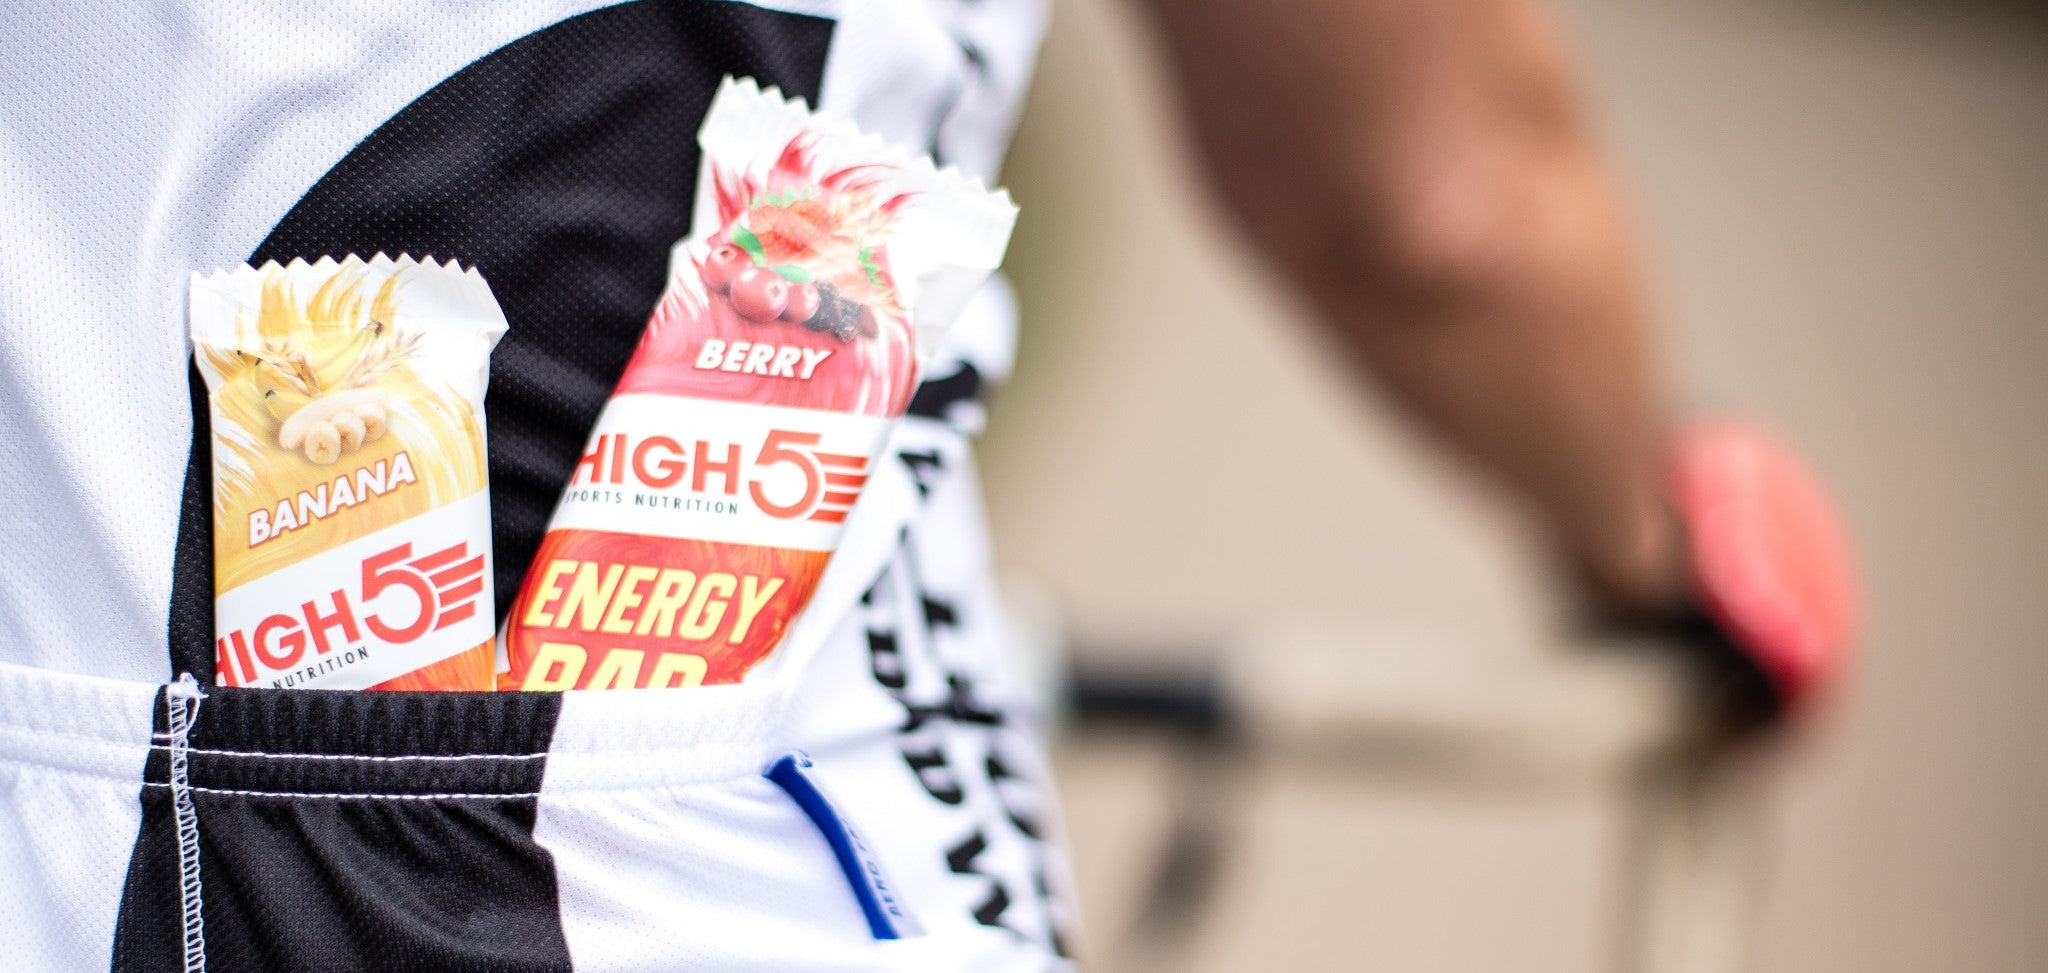 HIGH5 Energy Bars in a cycling jersey